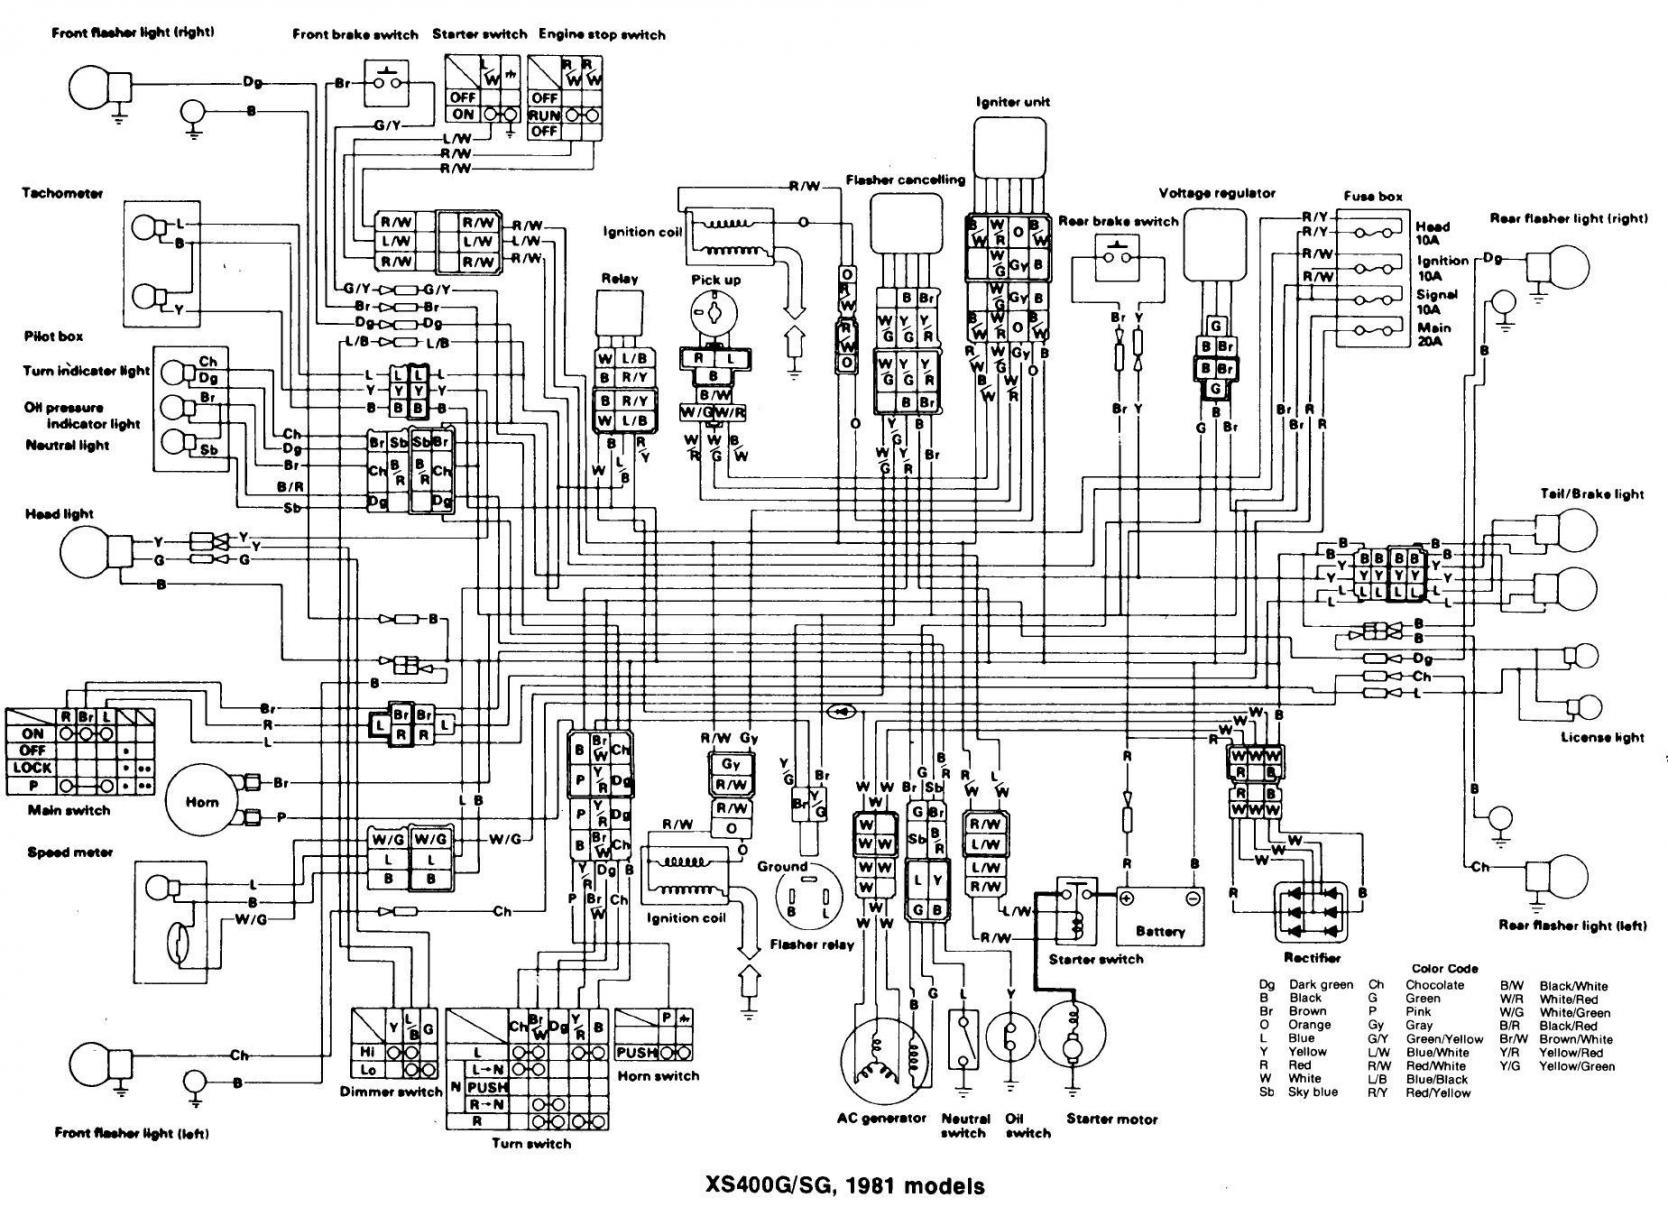 Wiring Diagram For Yamaha Xt500